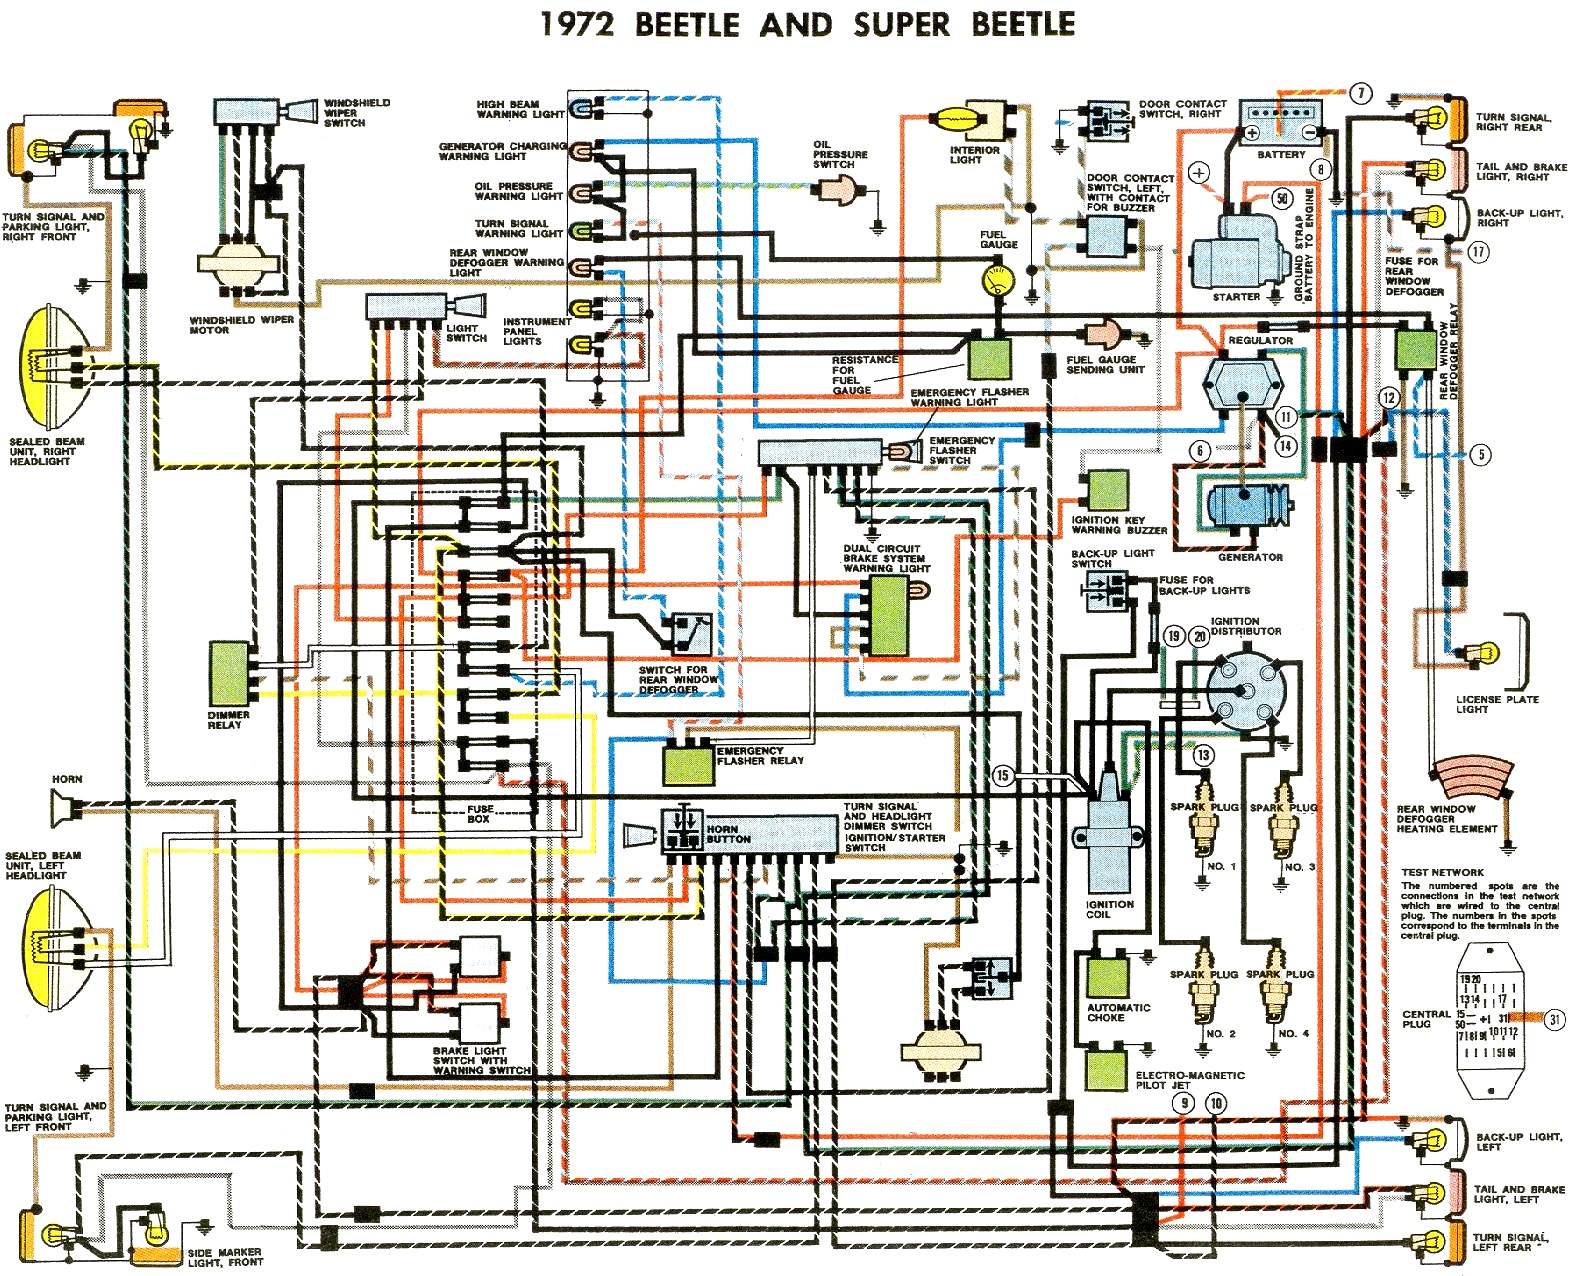 bug_72 1972 beetle wiring diagram thegoldenbug com beetle wiring harness at gsmx.co